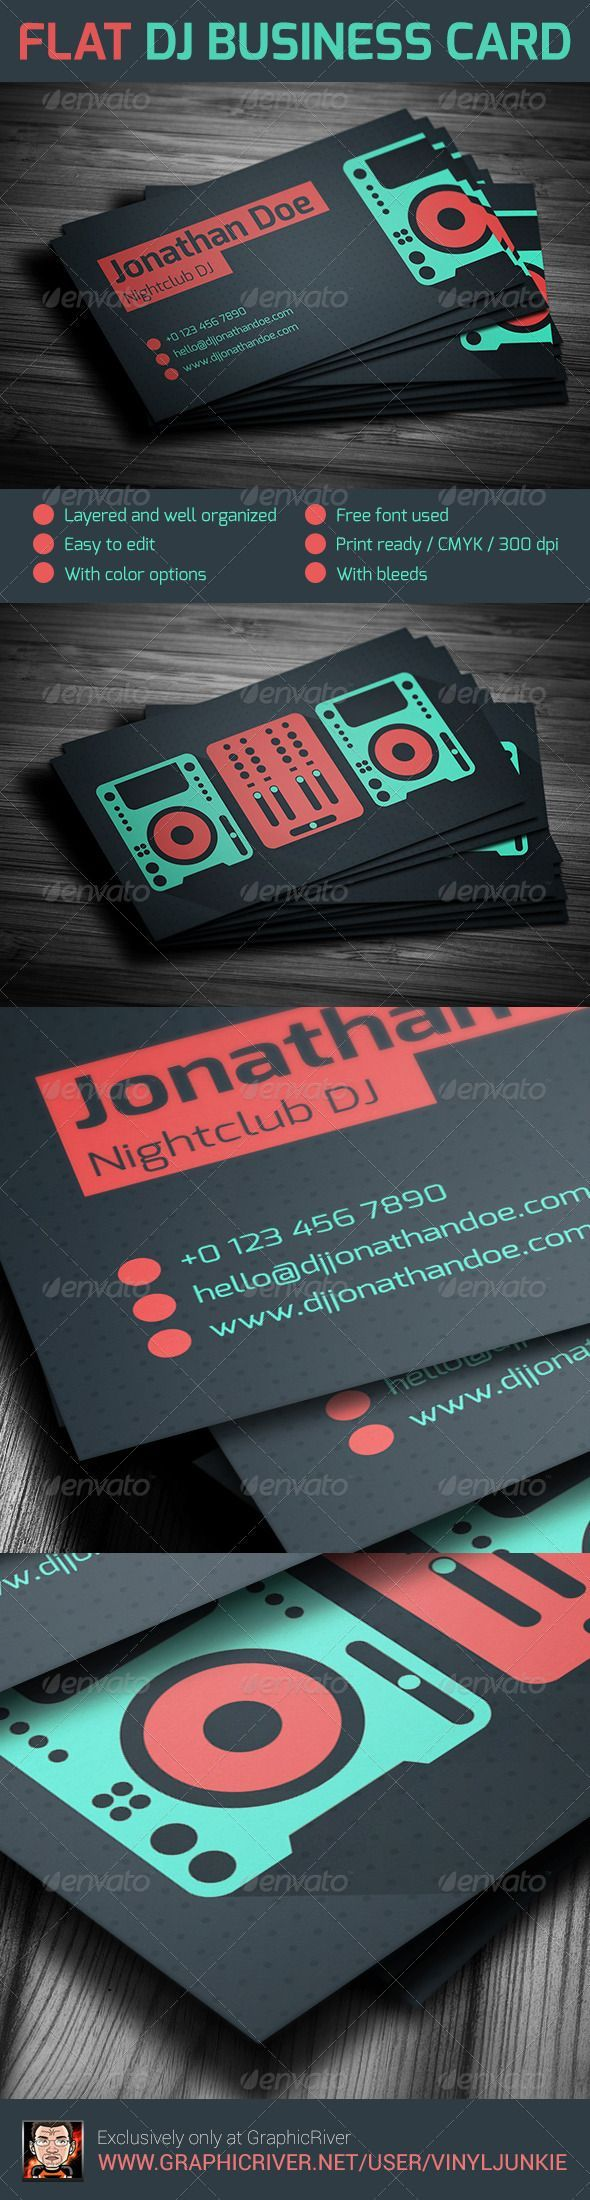 22 best dj business cards images on pinterest dj business cards flat dj business card business card template for professional djs and producers features layered customizable well organized easy to edit inch with cheaphphosting Gallery